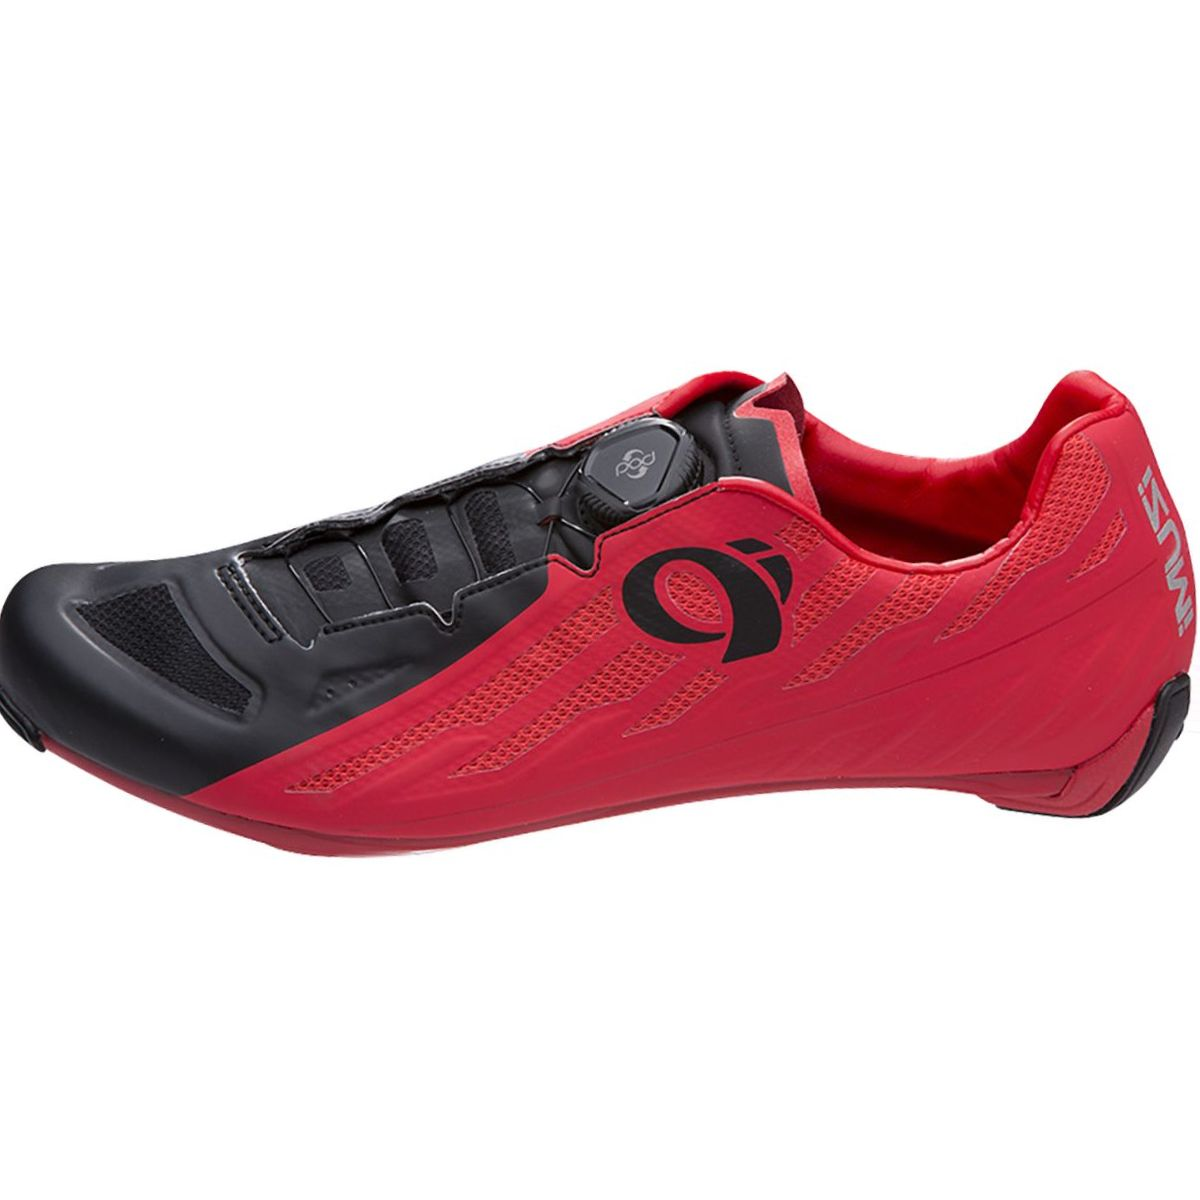 Pearl Izumi Race Road V5 Cycling Shoe - Men's